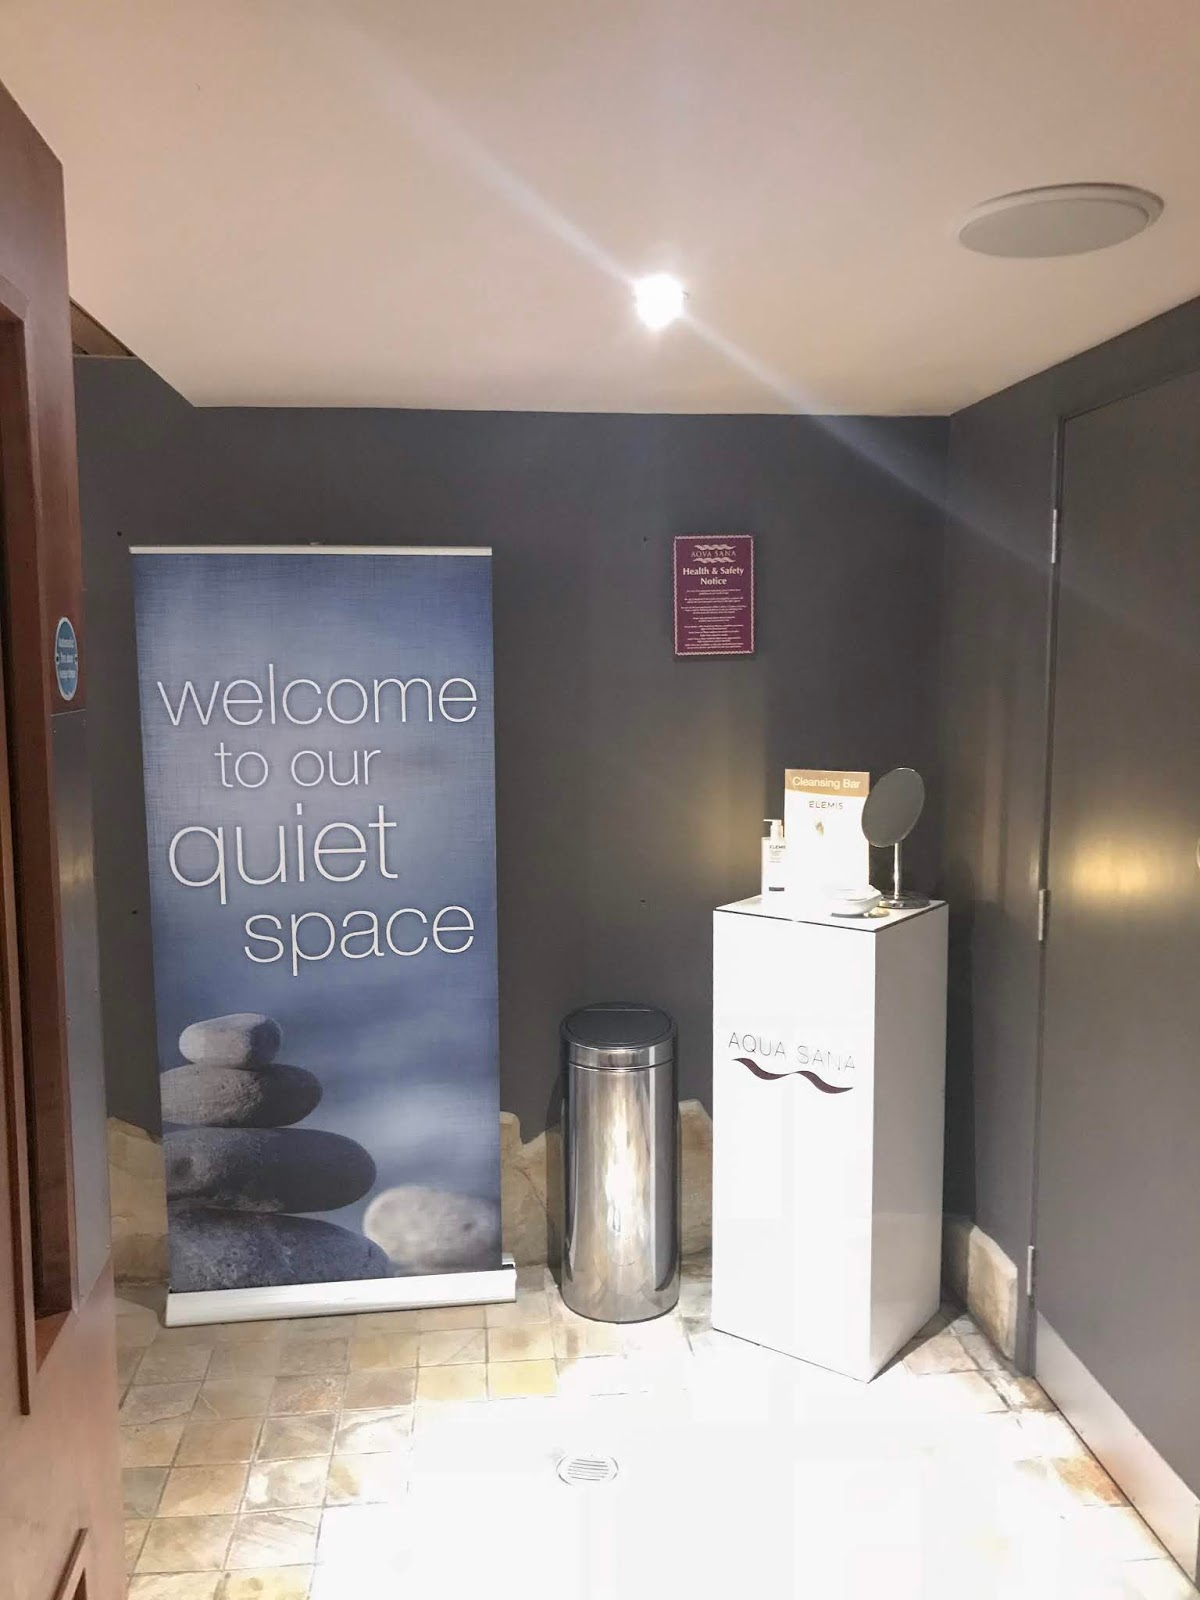 Spa Series: Aqua Sana Spa at Center Parcs Longleat, Katie Kirk Loves, UK Blogger, Beauty Blogger, Spa Review, Aqua Sana Spa Review, Elemis Spa Treatment, Hot Stone Massage, Skincare Blogger, UK Beauty Blogger